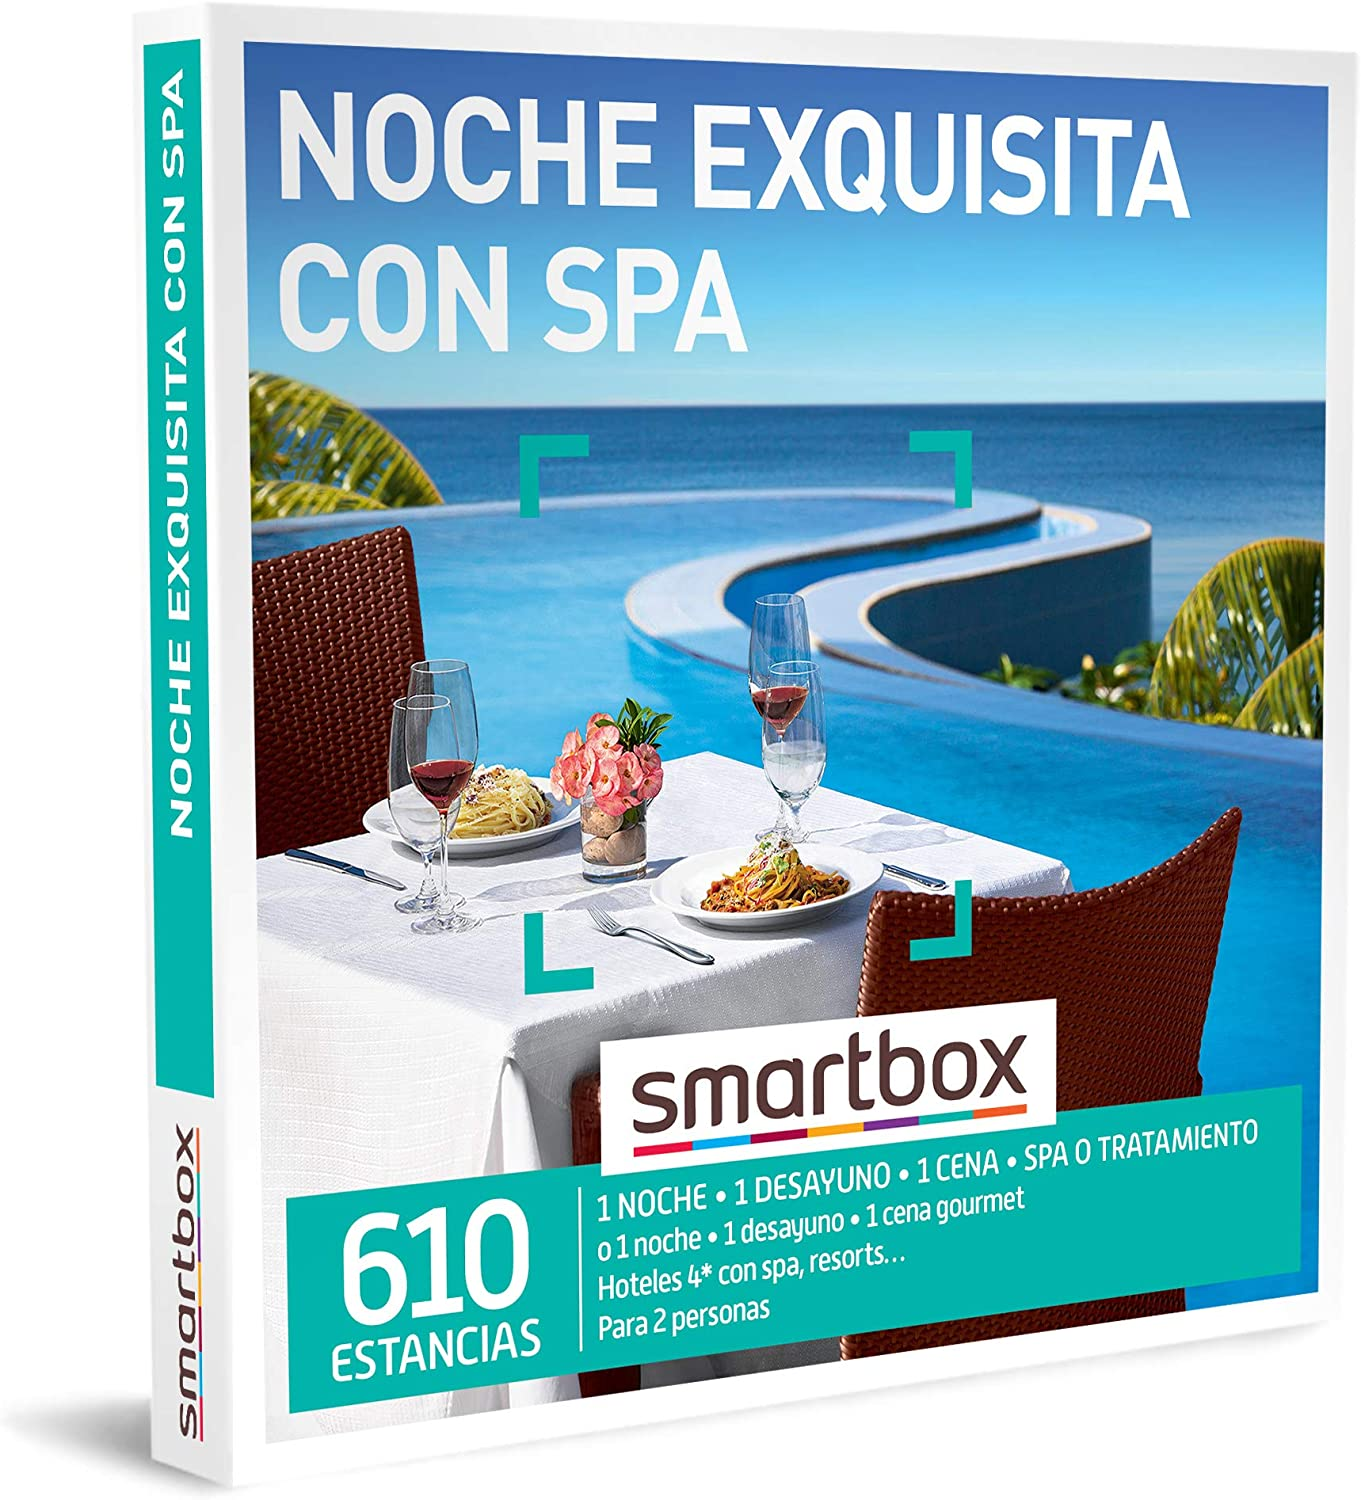 smartbox noche exquisita con spa